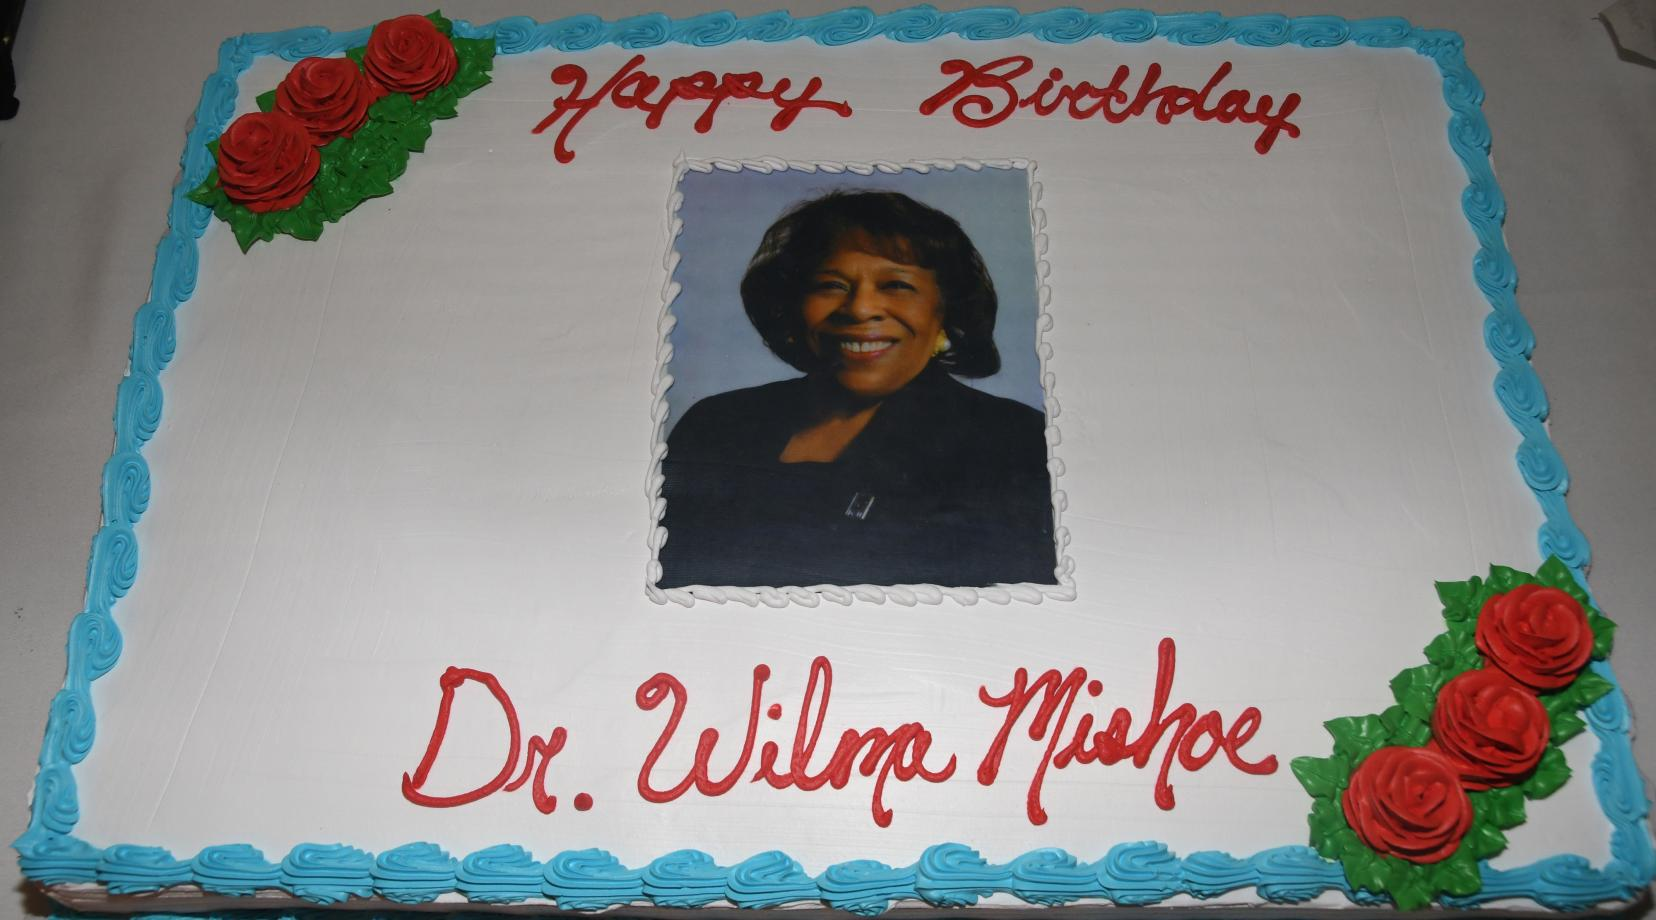 The cake that was made (and eaten) in celebration of Dr. Mishoe's 69th birthday.